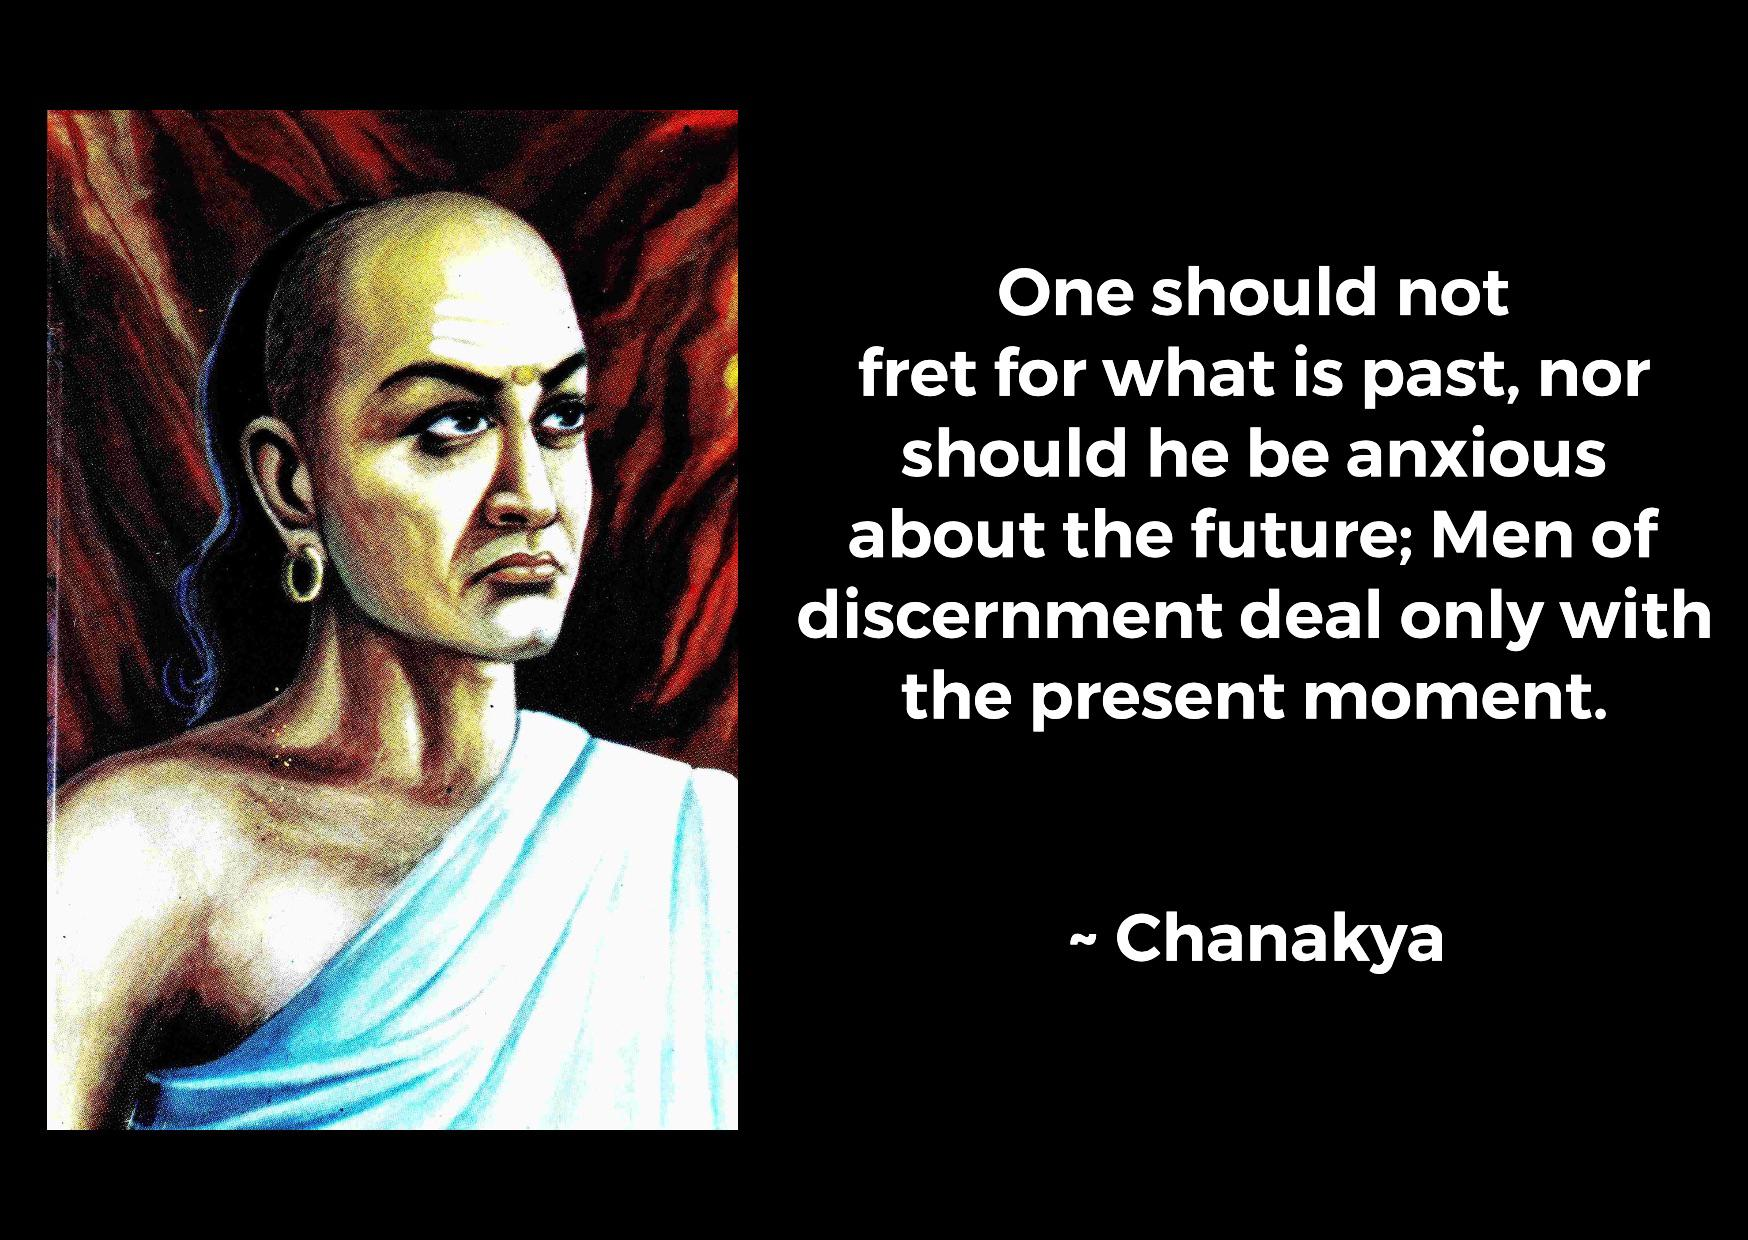 """One should not fret for what is past, nor should he be anxious about the future; Men of discernment deal only with the present moment""- Chanakya [1748×1240]"